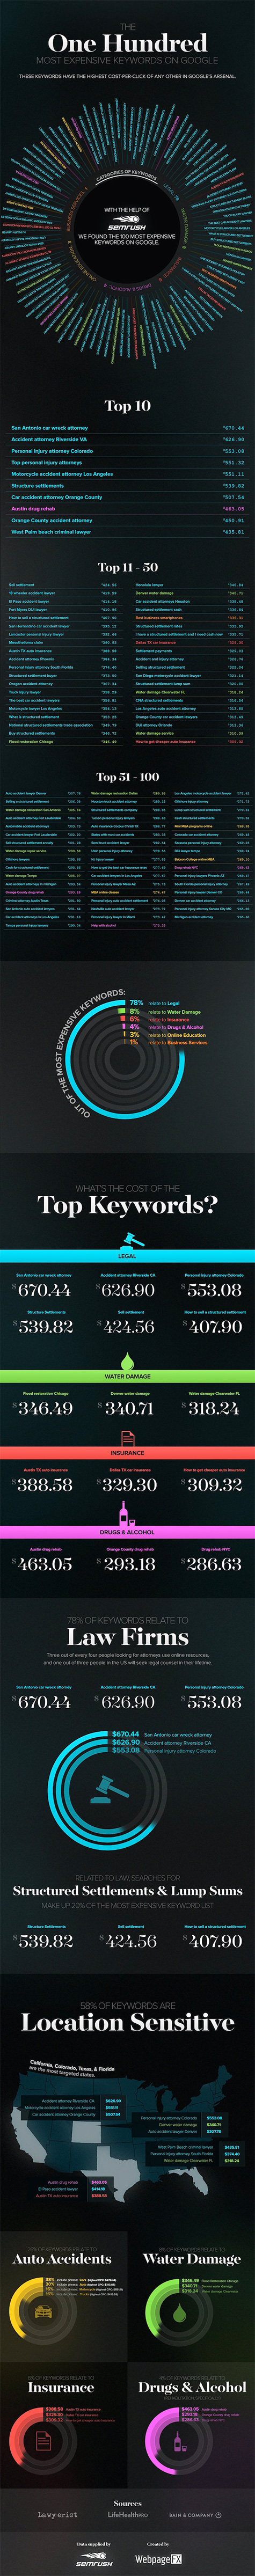 The 100 Most Expensive Keywords on Google [Infographic]